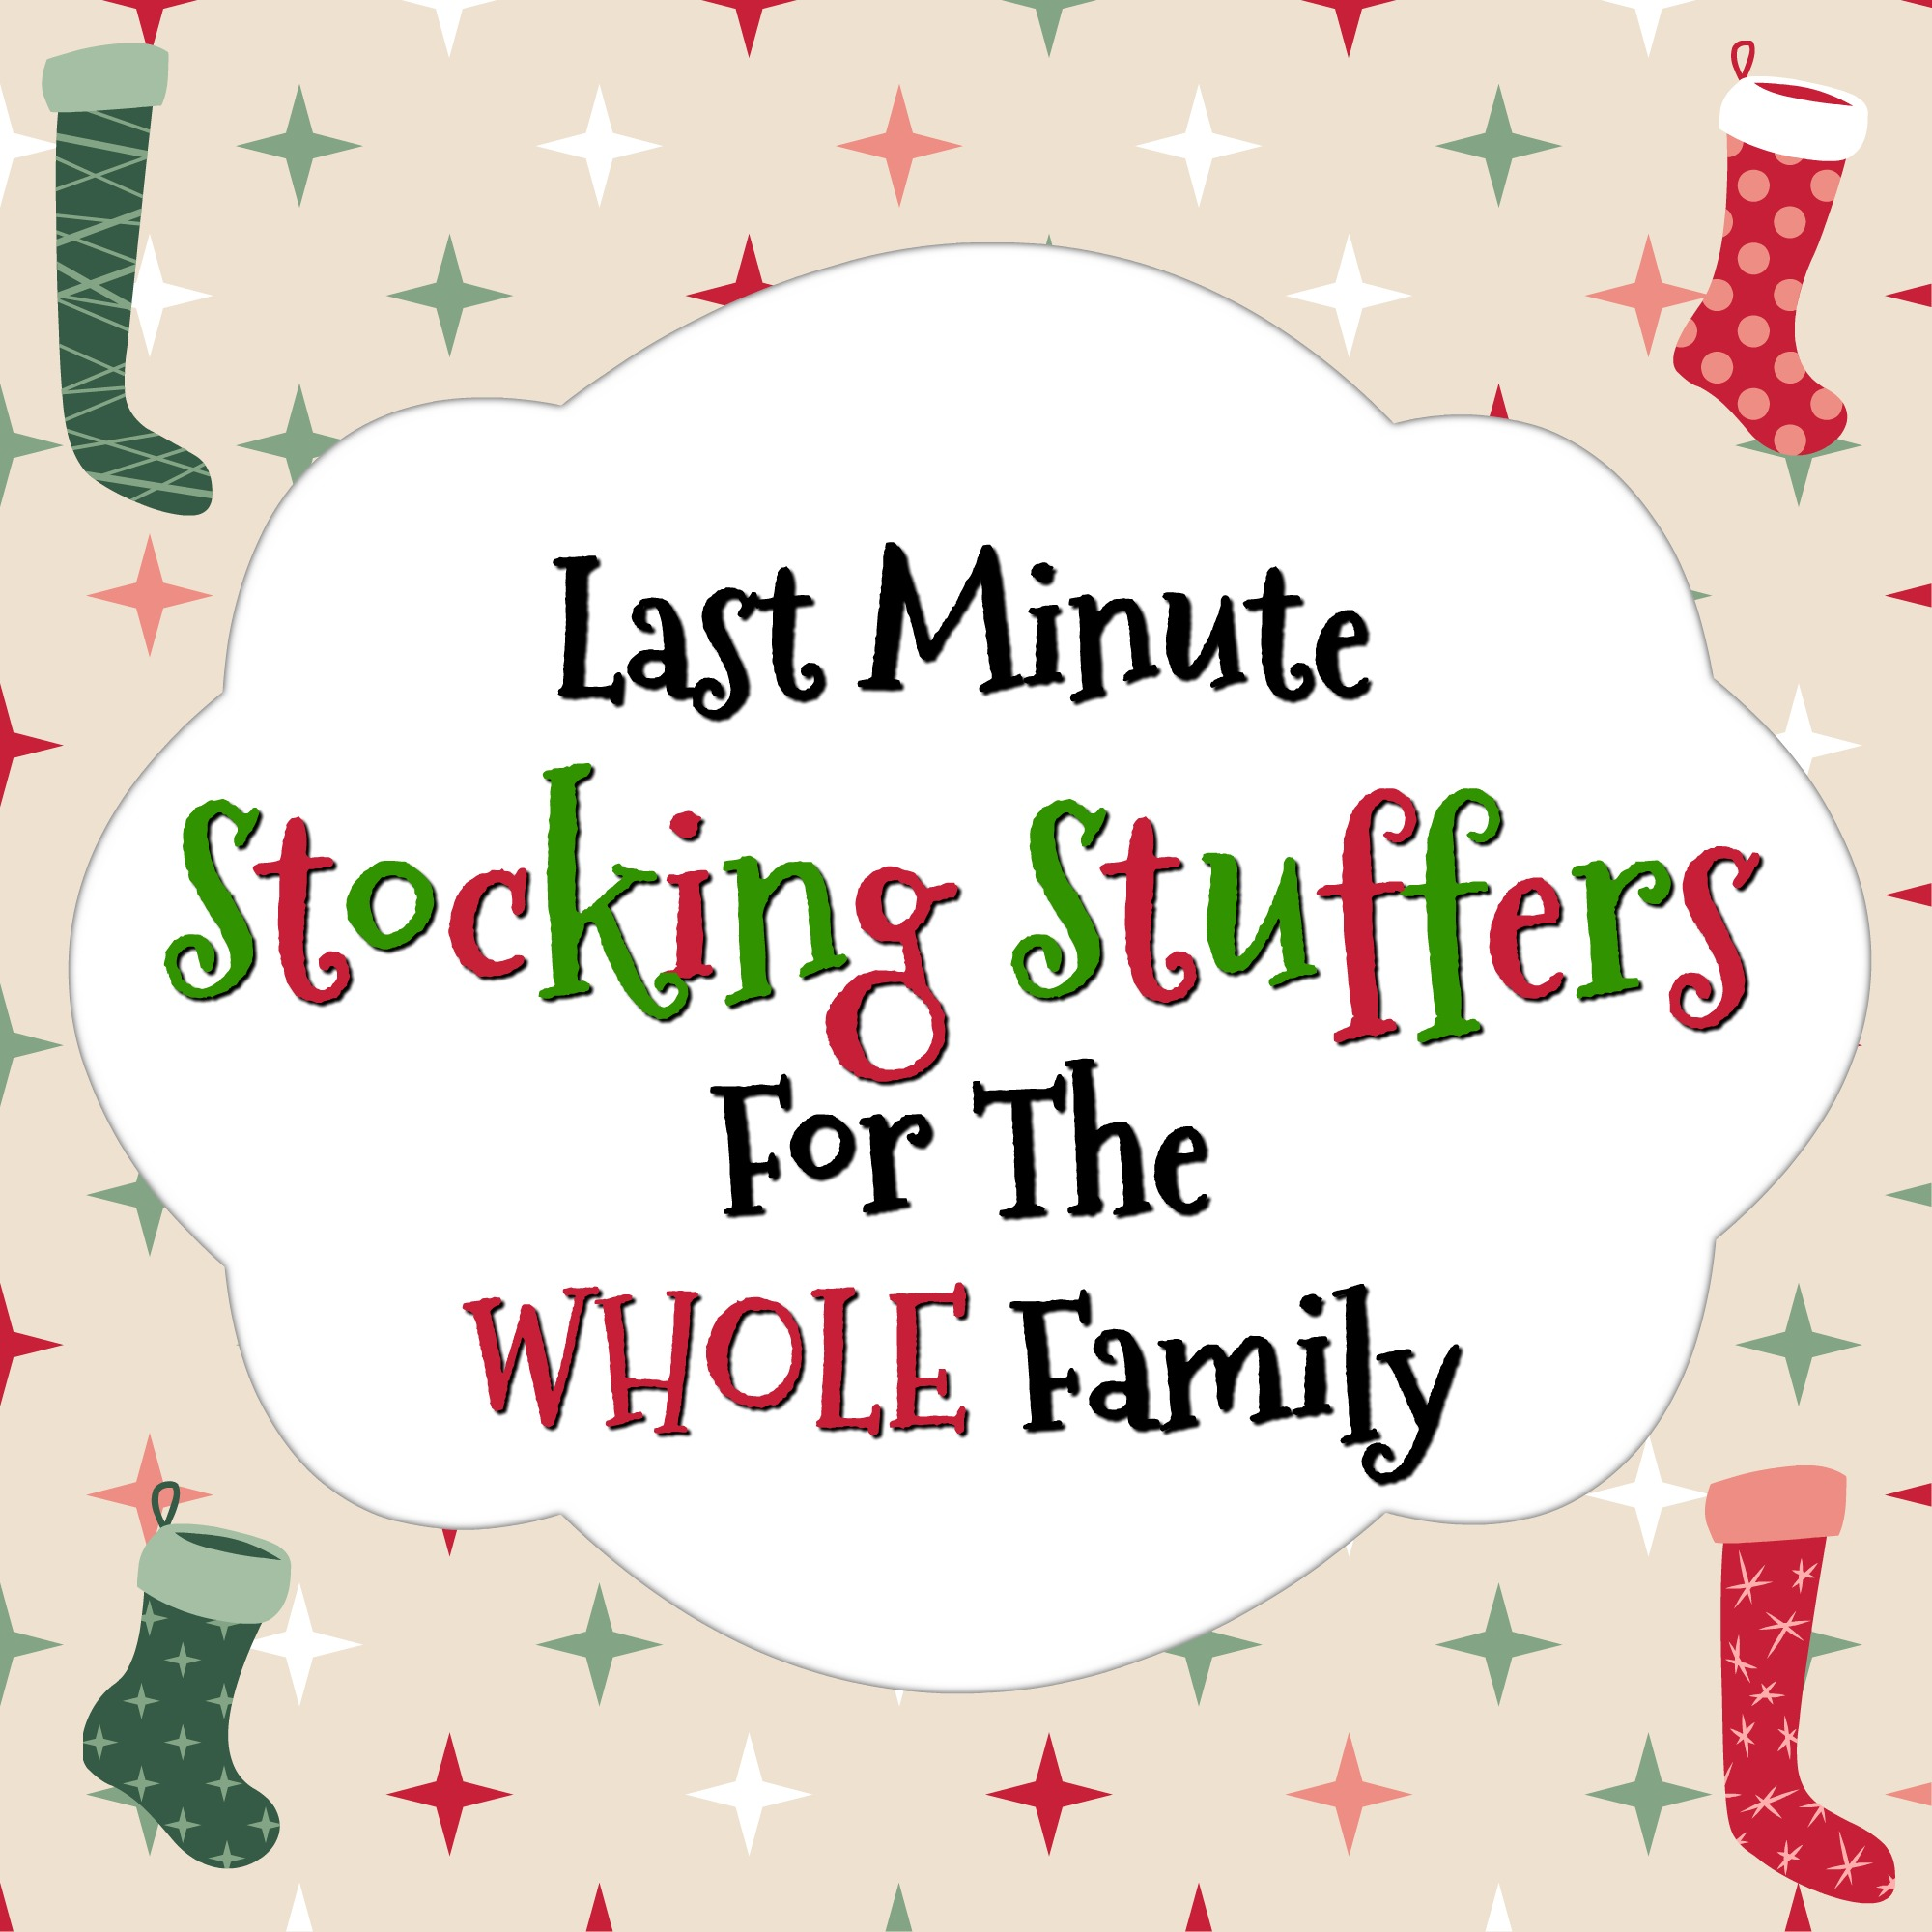 Last Minute Stocking Stuffers for the Whole Family